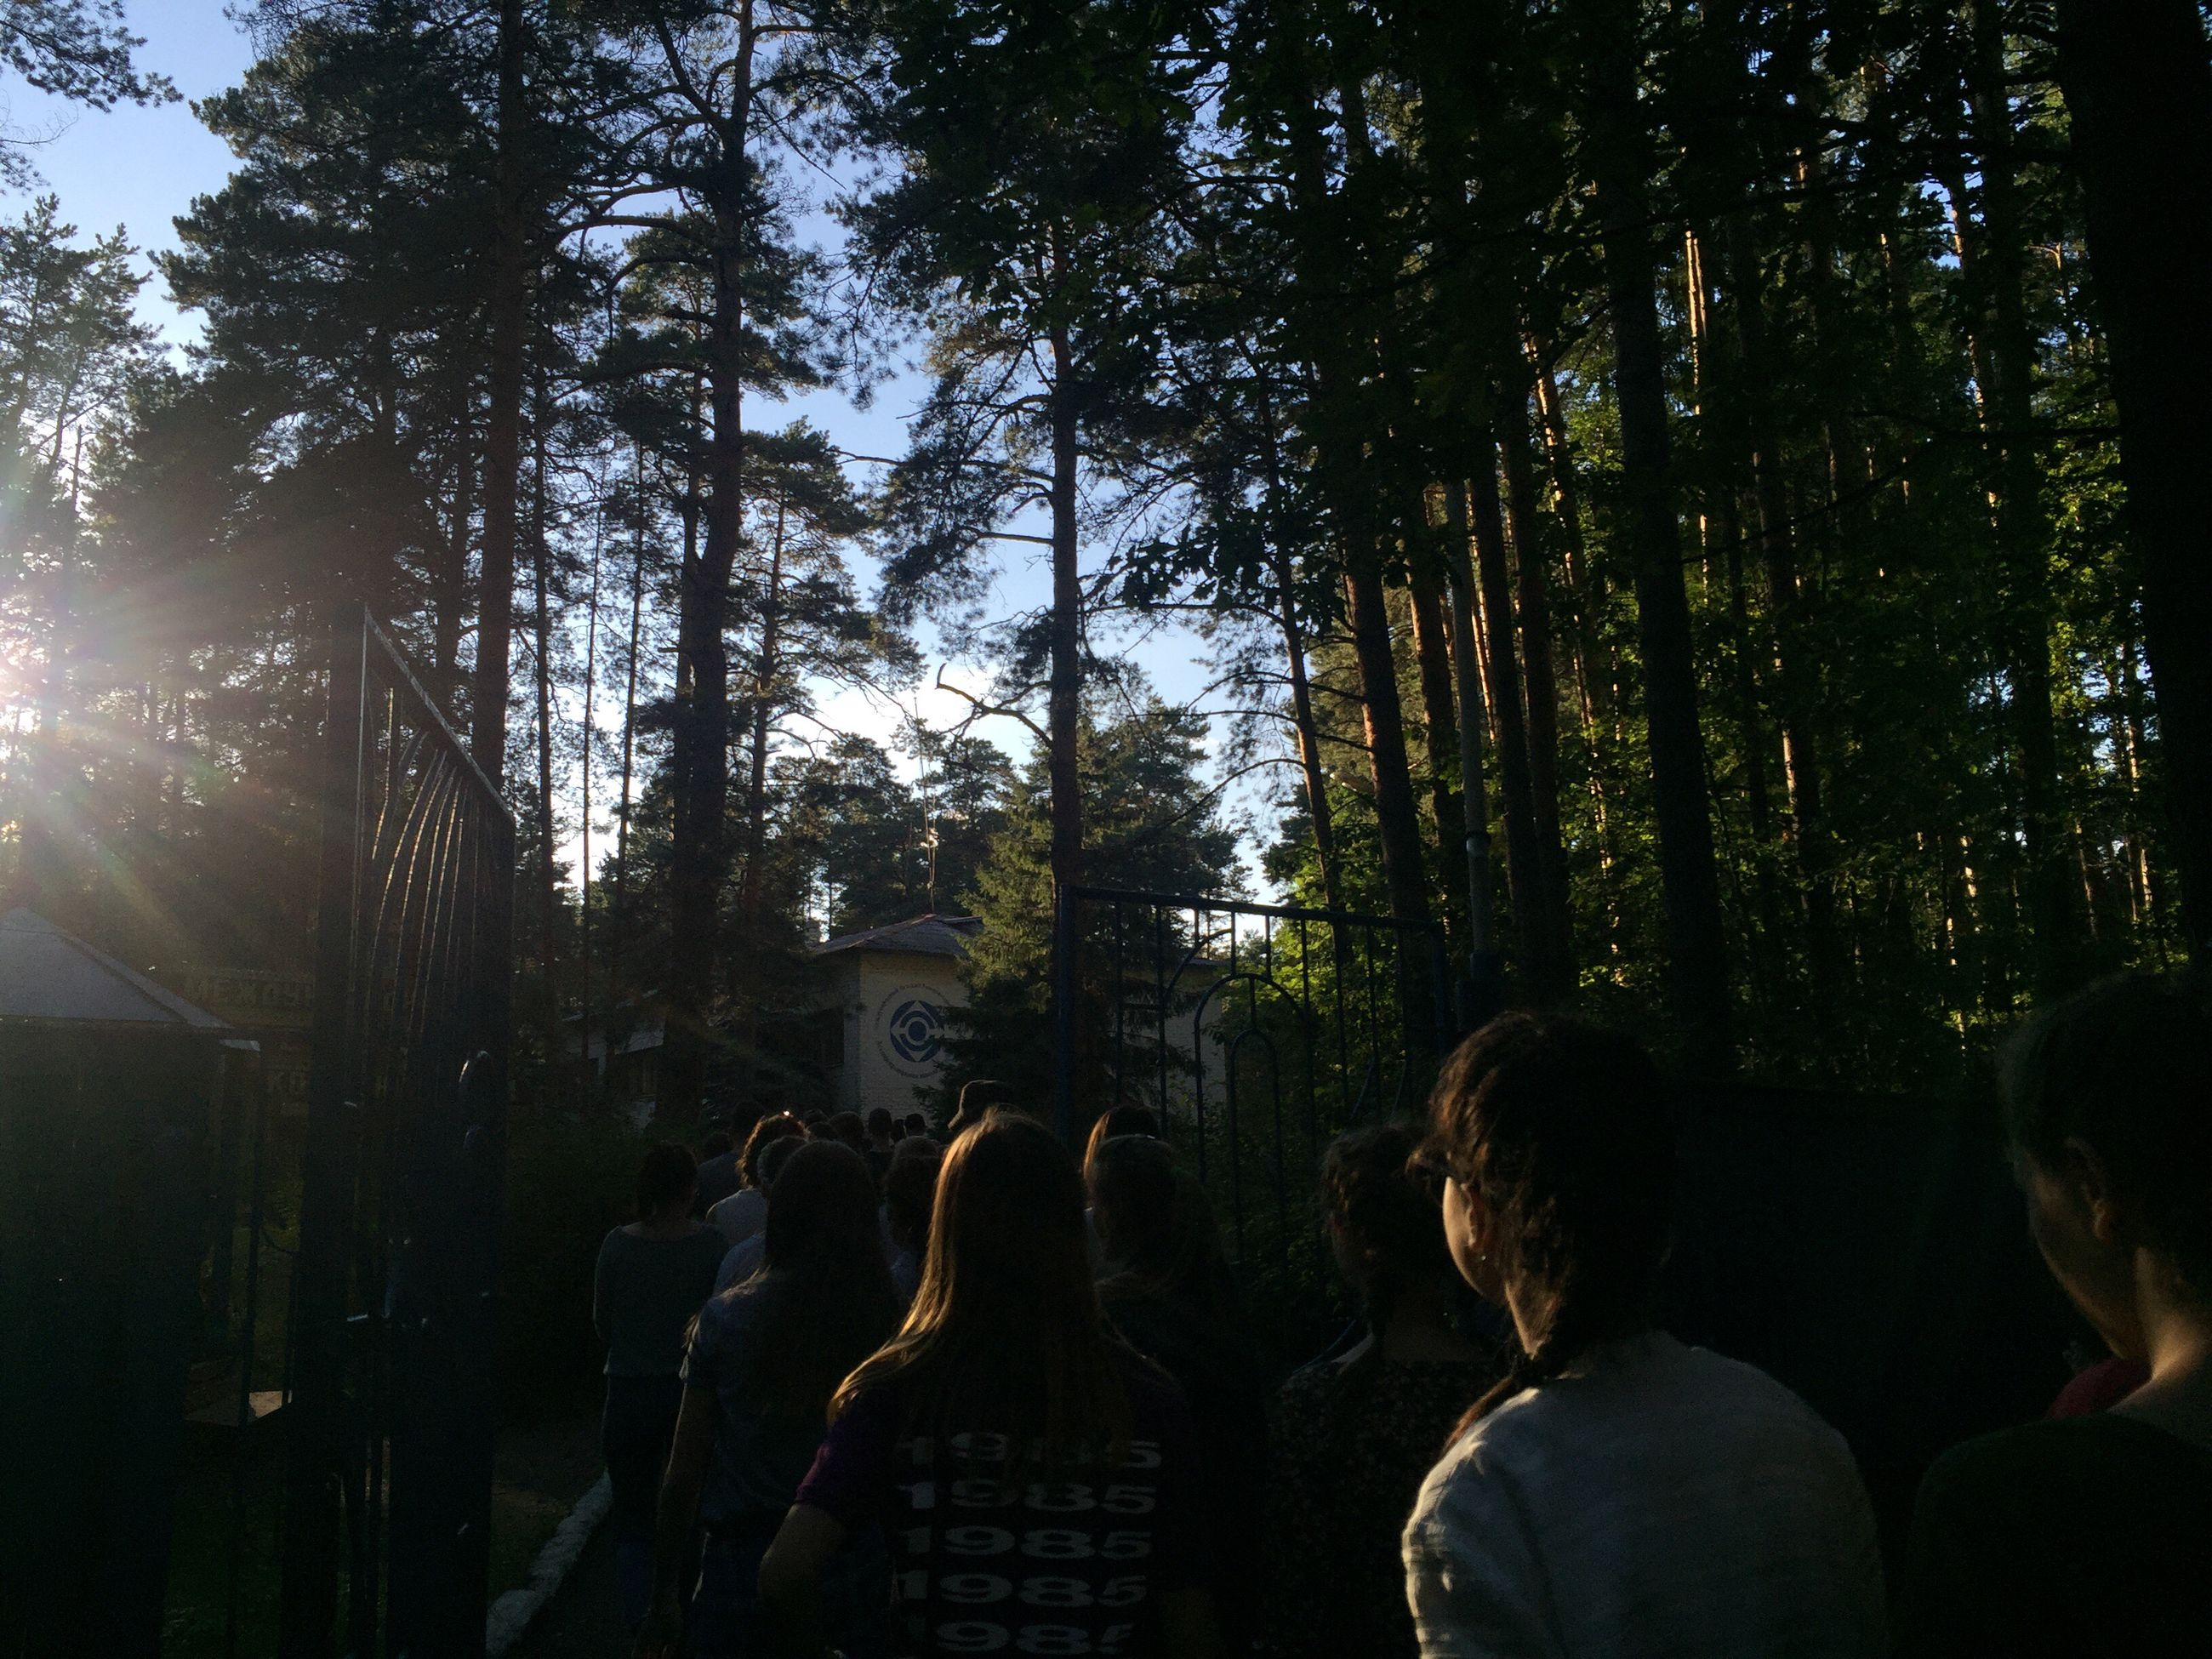 tree, forest, person, growth, woodland, enjoyment, nature, green color, crowd, tranquility, tranquil scene, nightlife